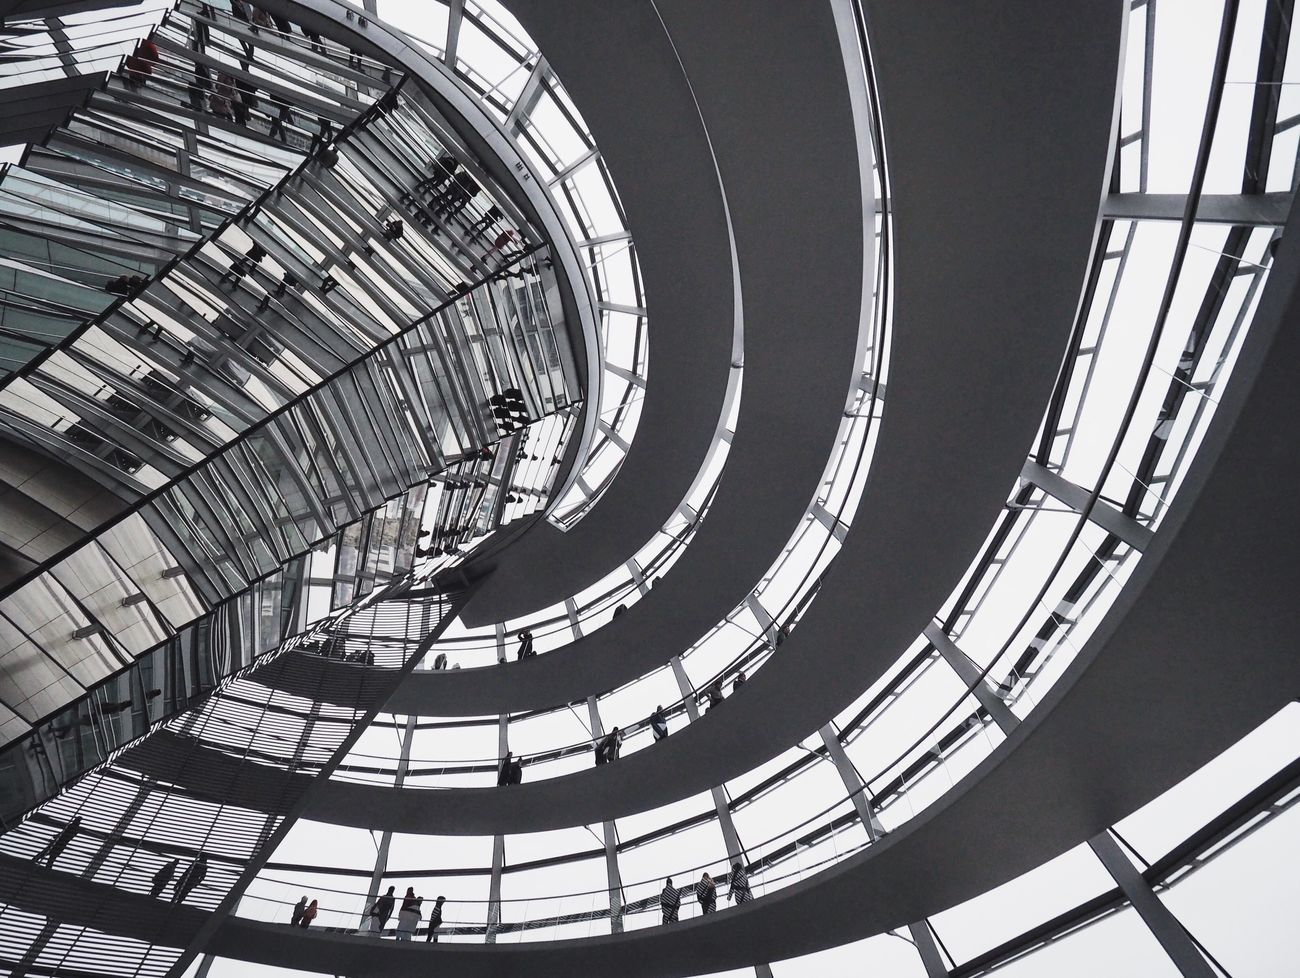 I finally got to see the Reichstag dome Olympus OM-D E-M5 Mk.II Simplicity Minimalobsession Urban Photography Showcase March Architecturelovers Urban Architecture Amazing Architecture Awesome Architecture Architecture_collection Olympus Architecture Berlin Reichstag